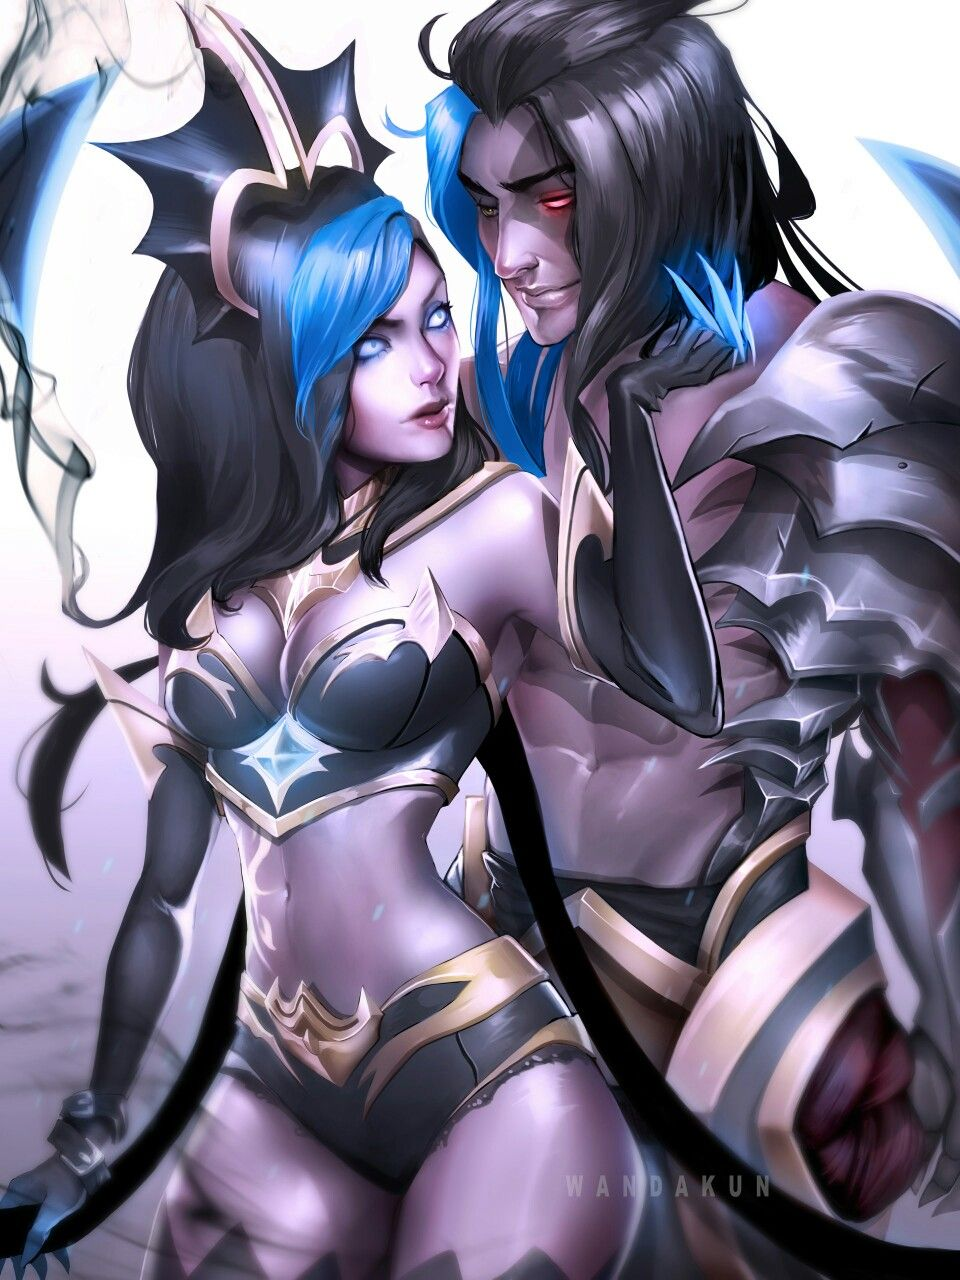 Evelynn and Kayn - League of Legends league of legends champions